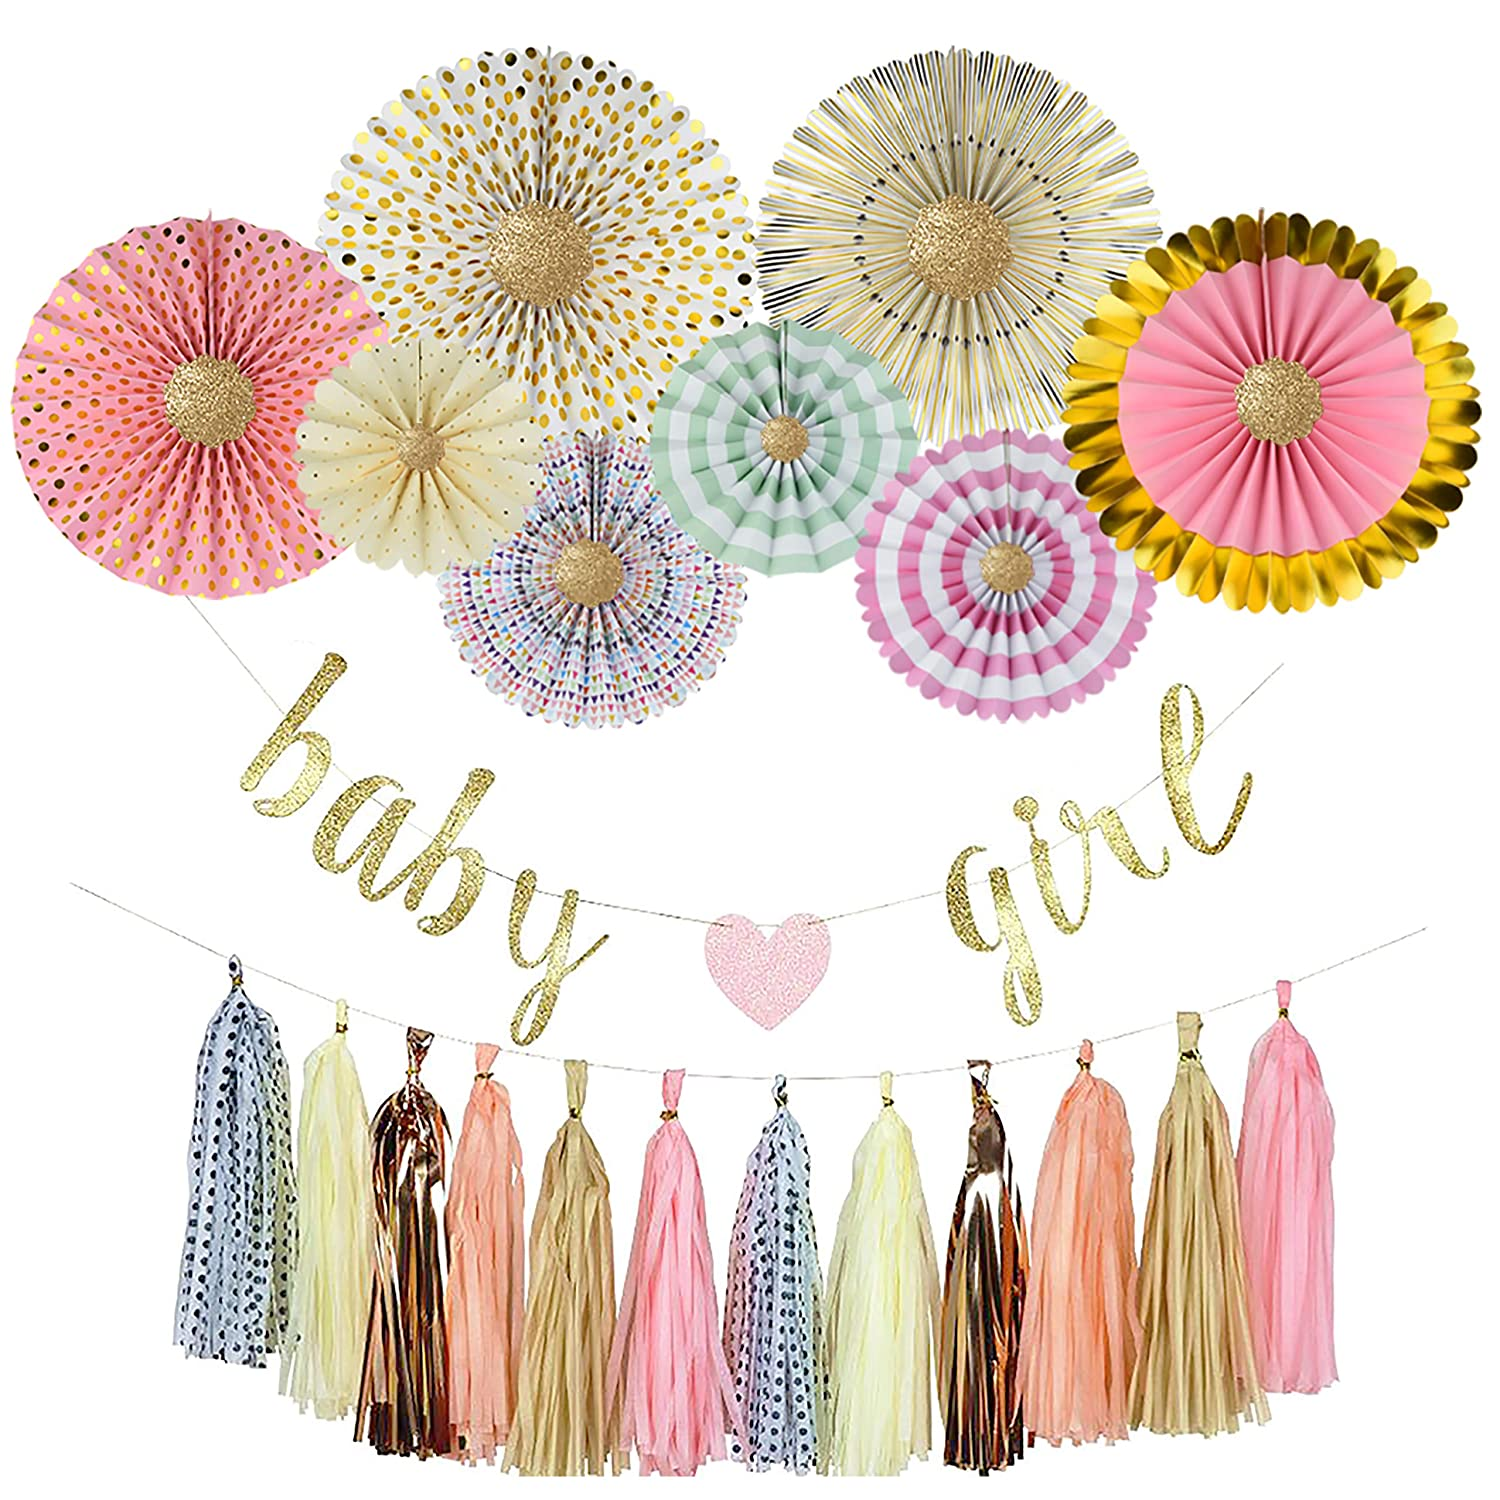 YARA Premium Baby Shower Decorations Kit for Girls| Pink and Gold Party Supplies| Paper Fans| Pink Party Decorations| Baby Girl Banner| Hanging| Tassels| Glitter Gold| Pink| Cream| Peach| Rose Gold